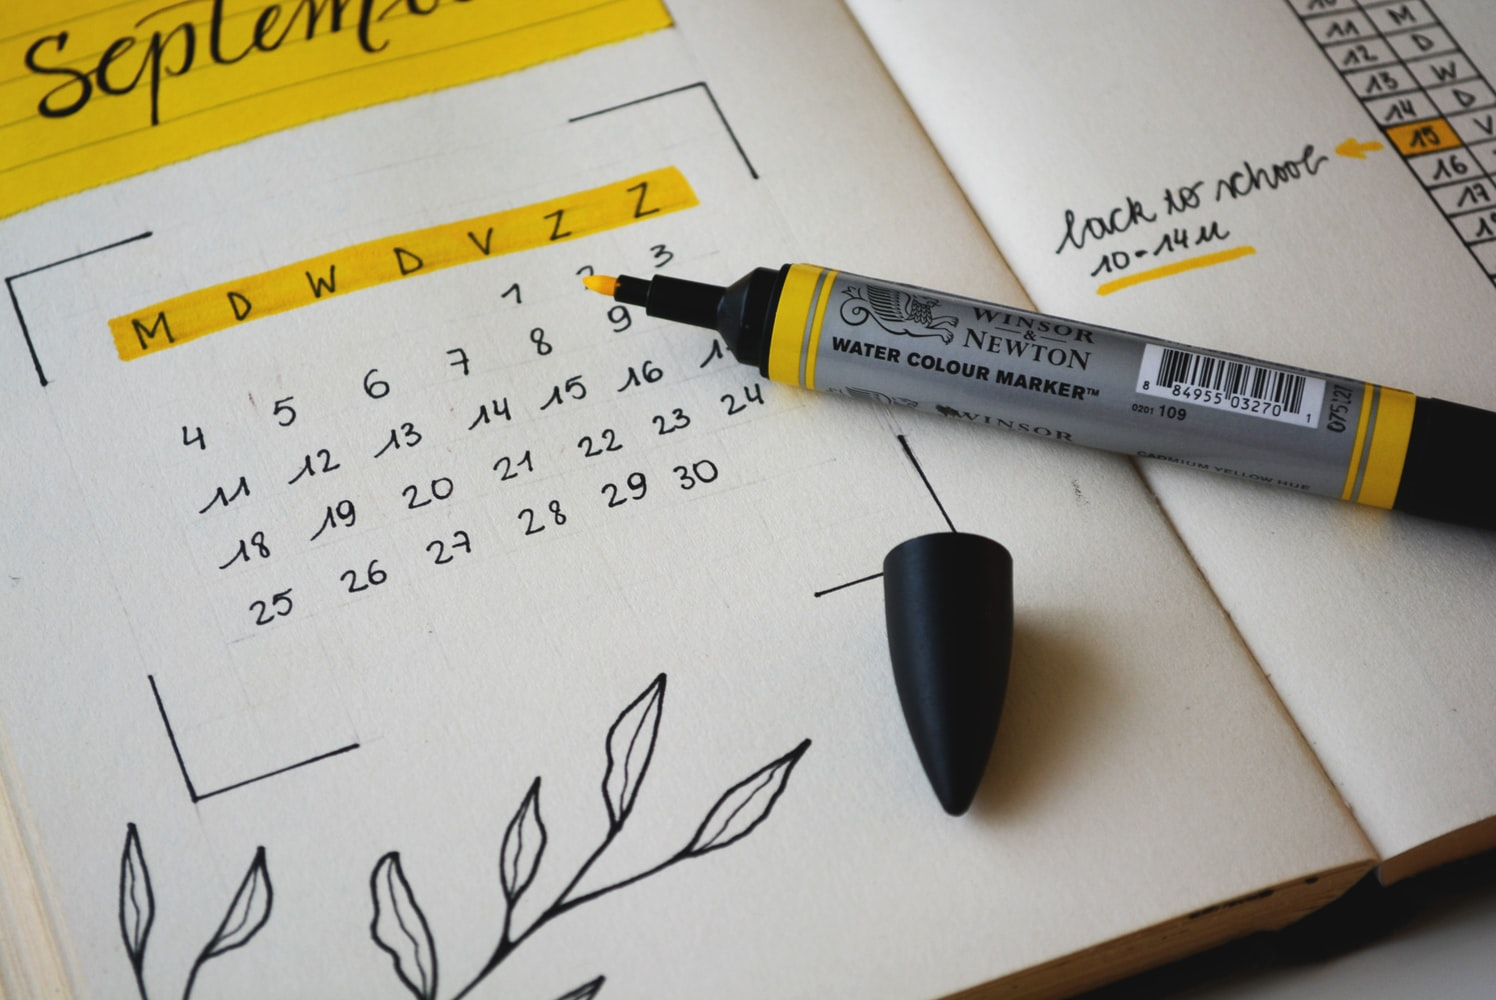 Scheduling the interview correctly is of paramount importance.